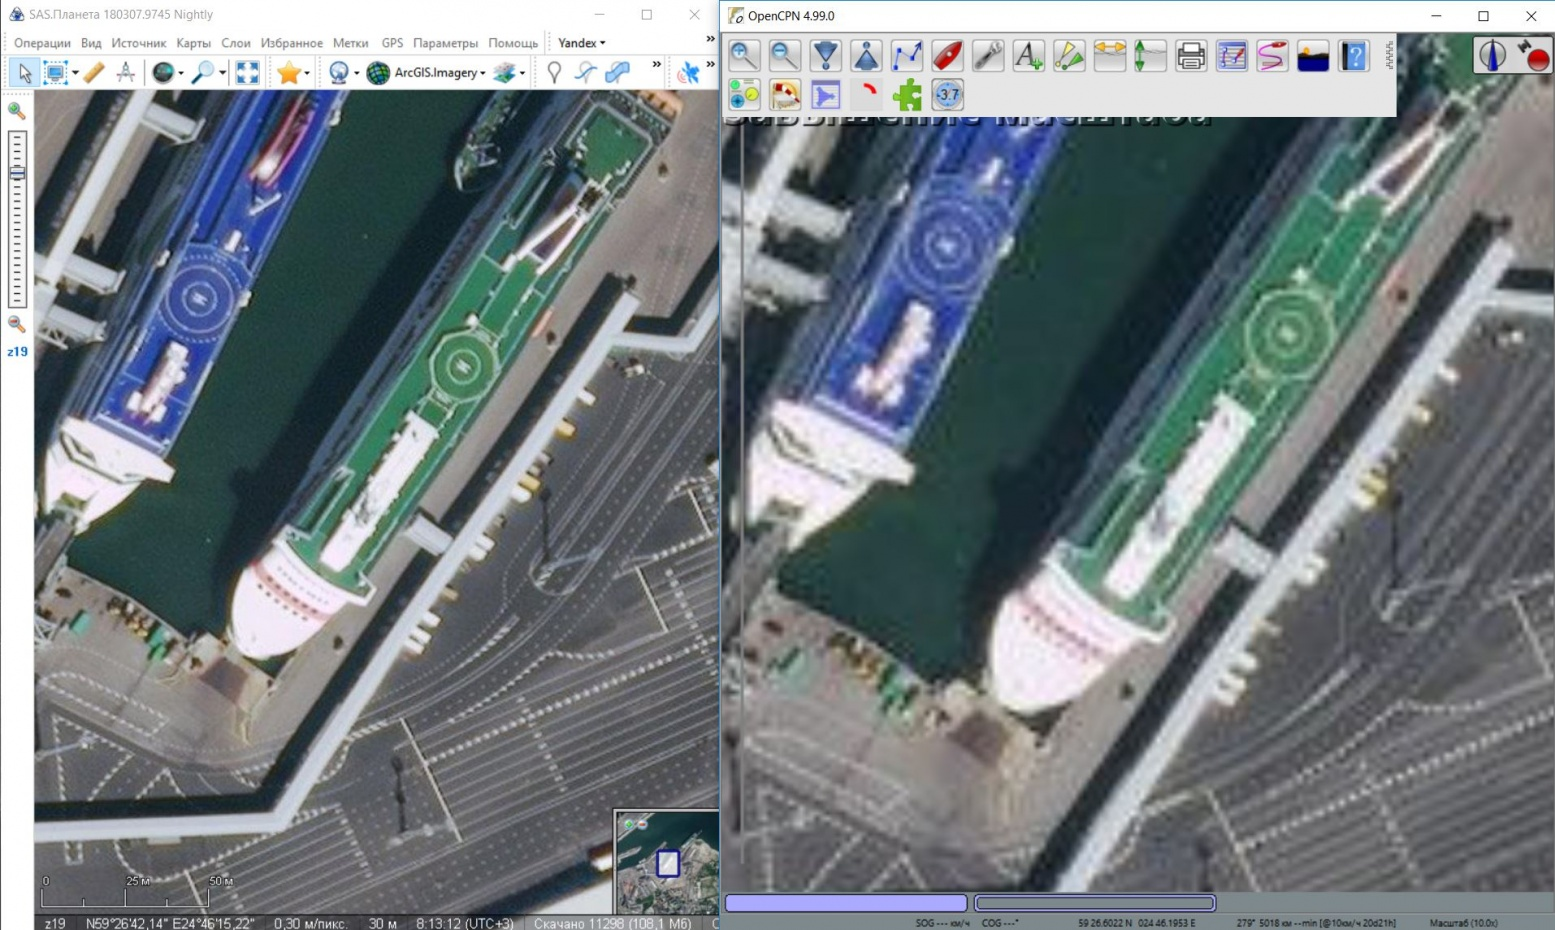 MBTiles for OpenCPN - Page 7 - Cruisers & Sailing Forums